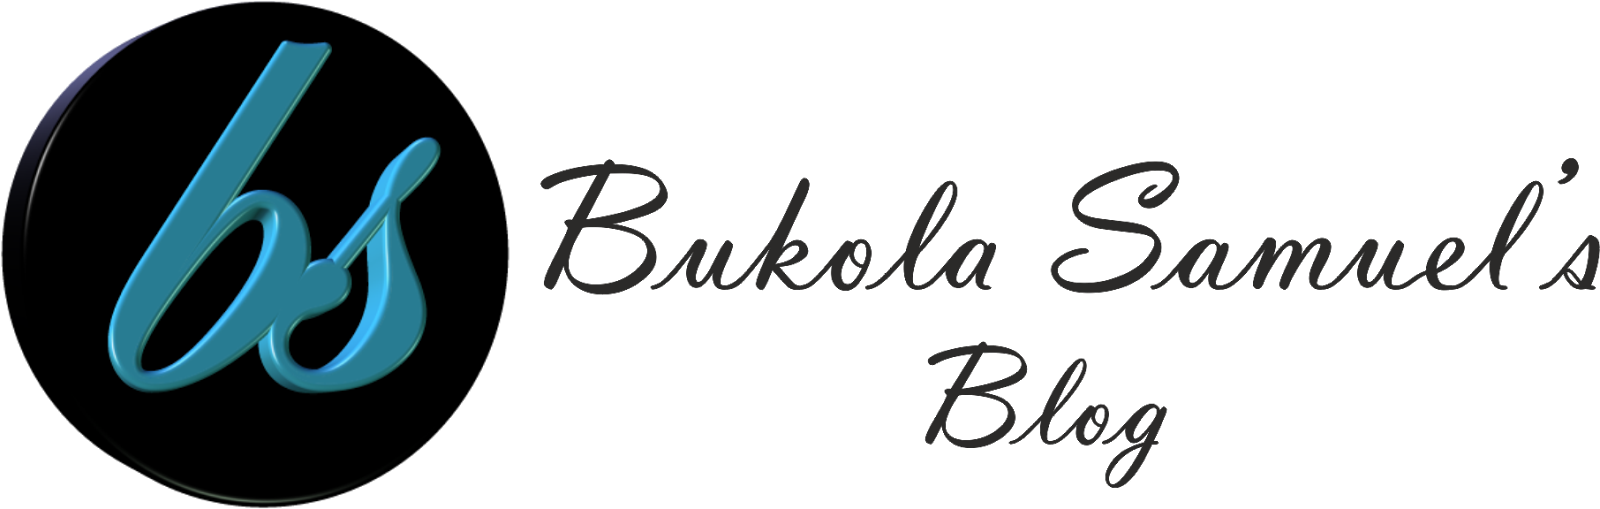 This Is Bukola Samuel's Blog